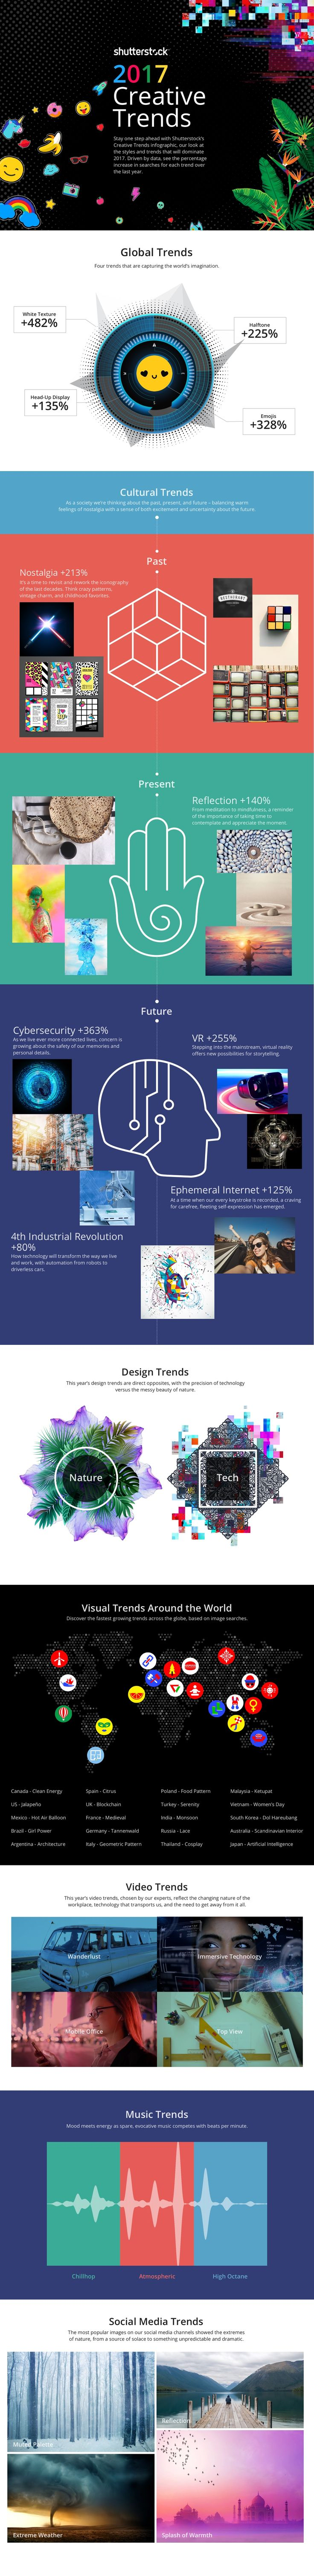 Global Creative Trends That Will Shape 2017. This year's predictions showcase a stark contrast – between the real world and the digital world, between nature and technology, and between the past and the future. Shutterstock has also predicted four big global trends you'll be sure to want to learn about.